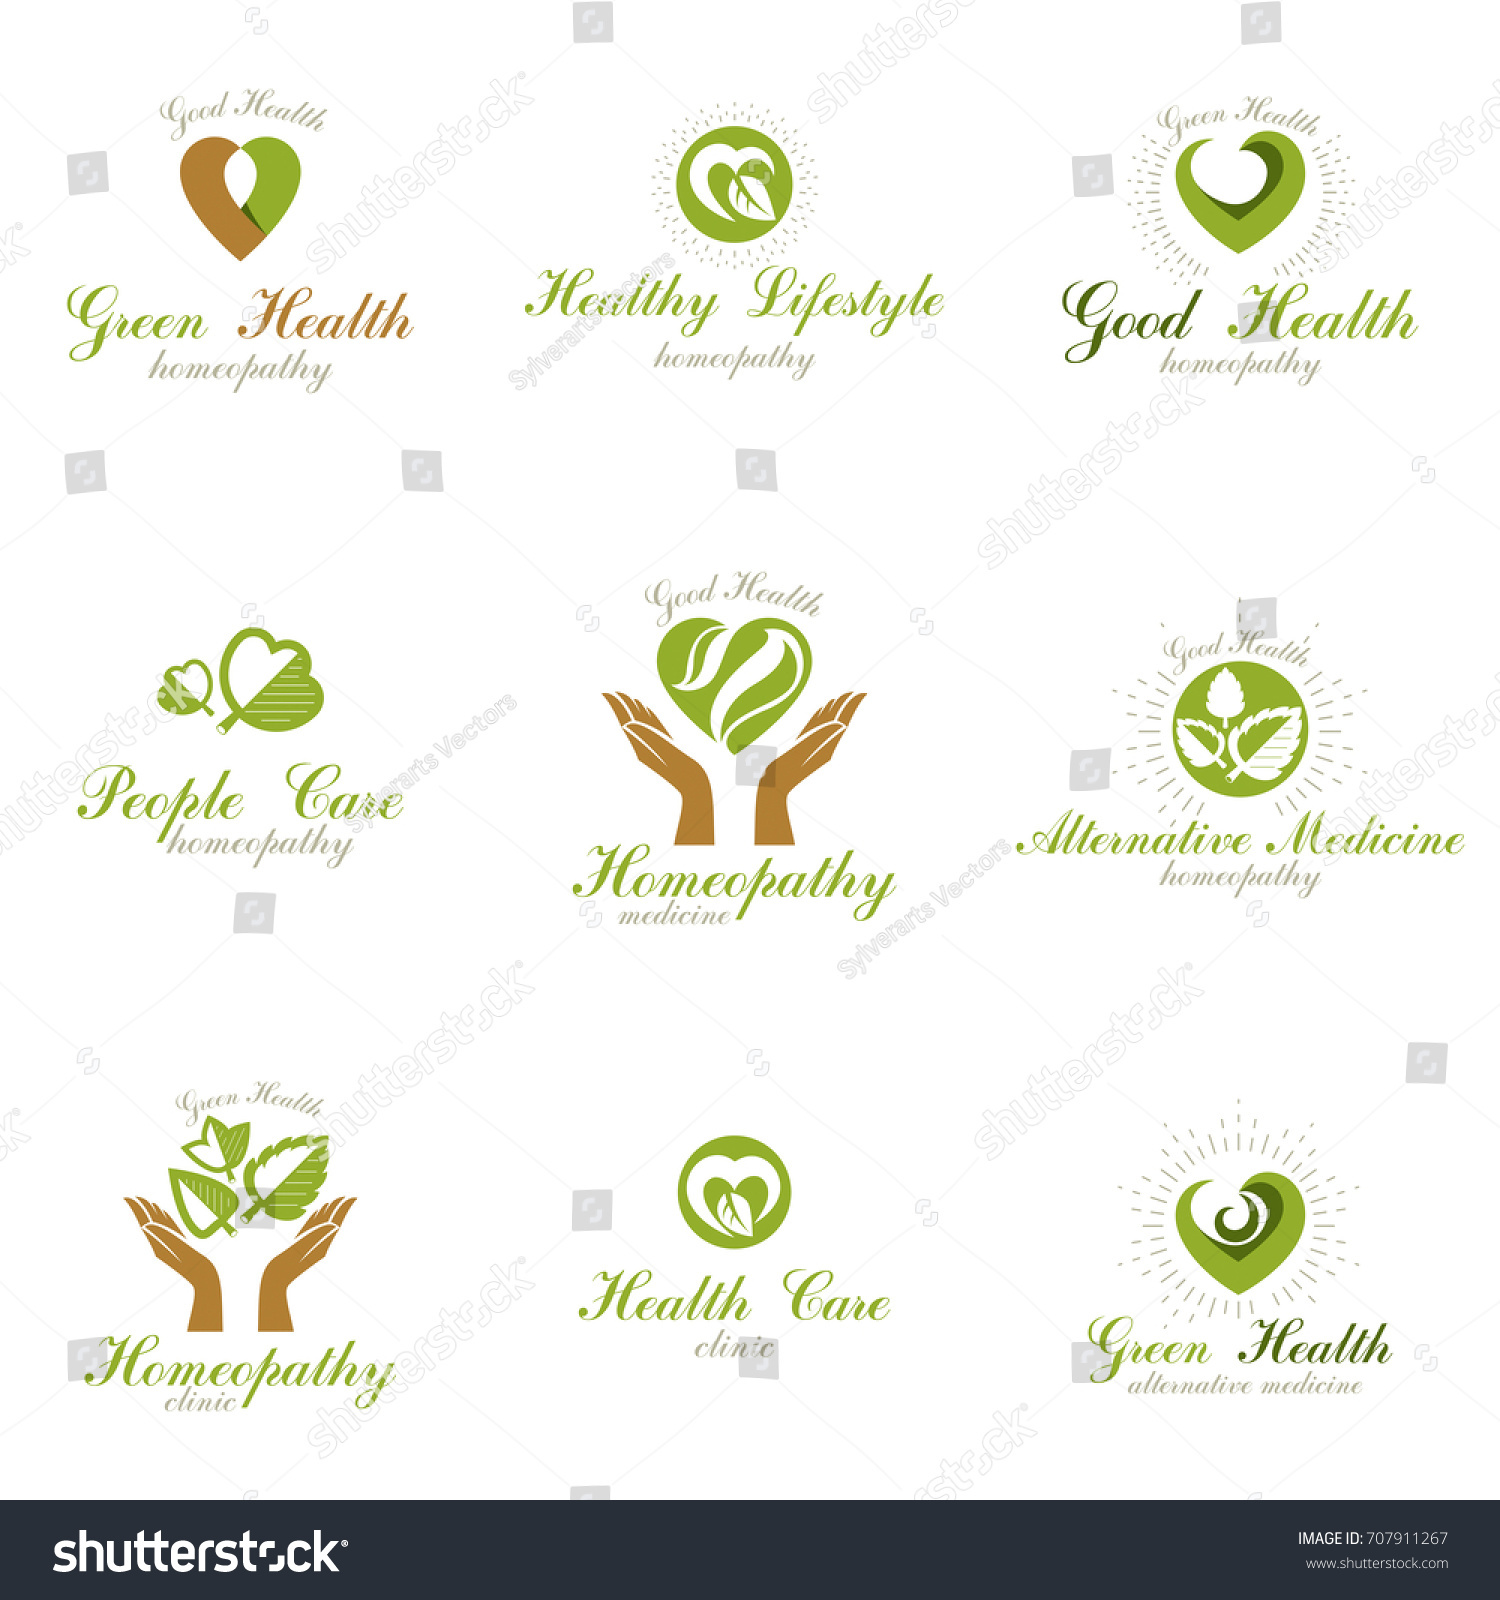 Homeopathy creative symbols collection naturopathy conceptual stock homeopathy creative symbols collection naturopathy conceptual vector emblems created using green leaves heart shapes buycottarizona Images